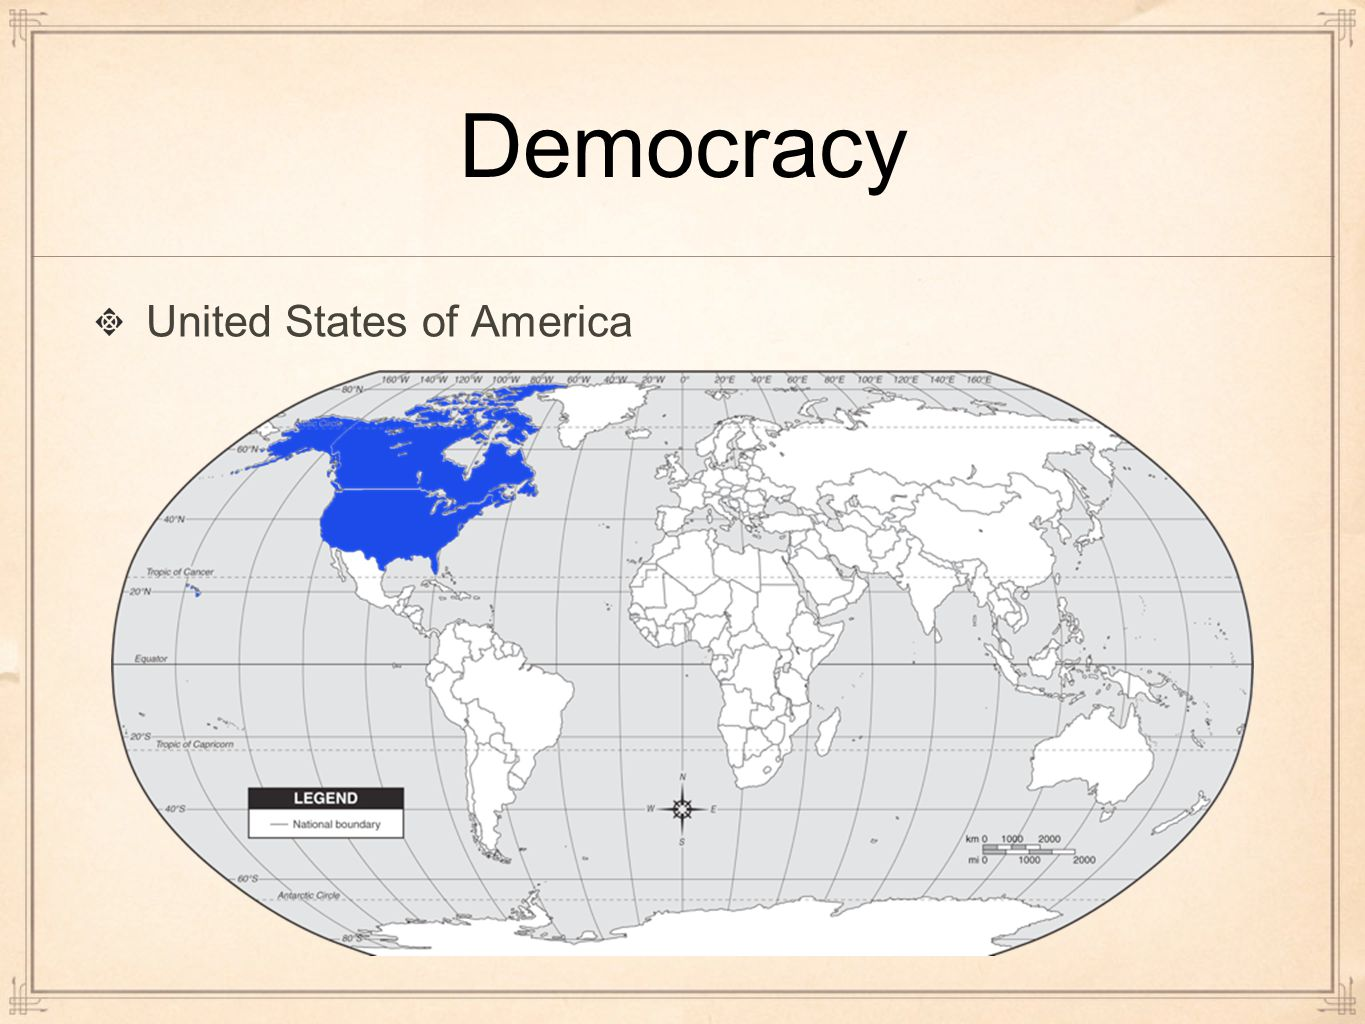 a history of democratic government in the united states With the adoption of a democratic republic, the constitution of the united states not only generates a rostrum for liberty, equality and fraternity, but also extols the definition of democracy as a 'government of the people, for the people and by the people', as given by abraham lincoln.